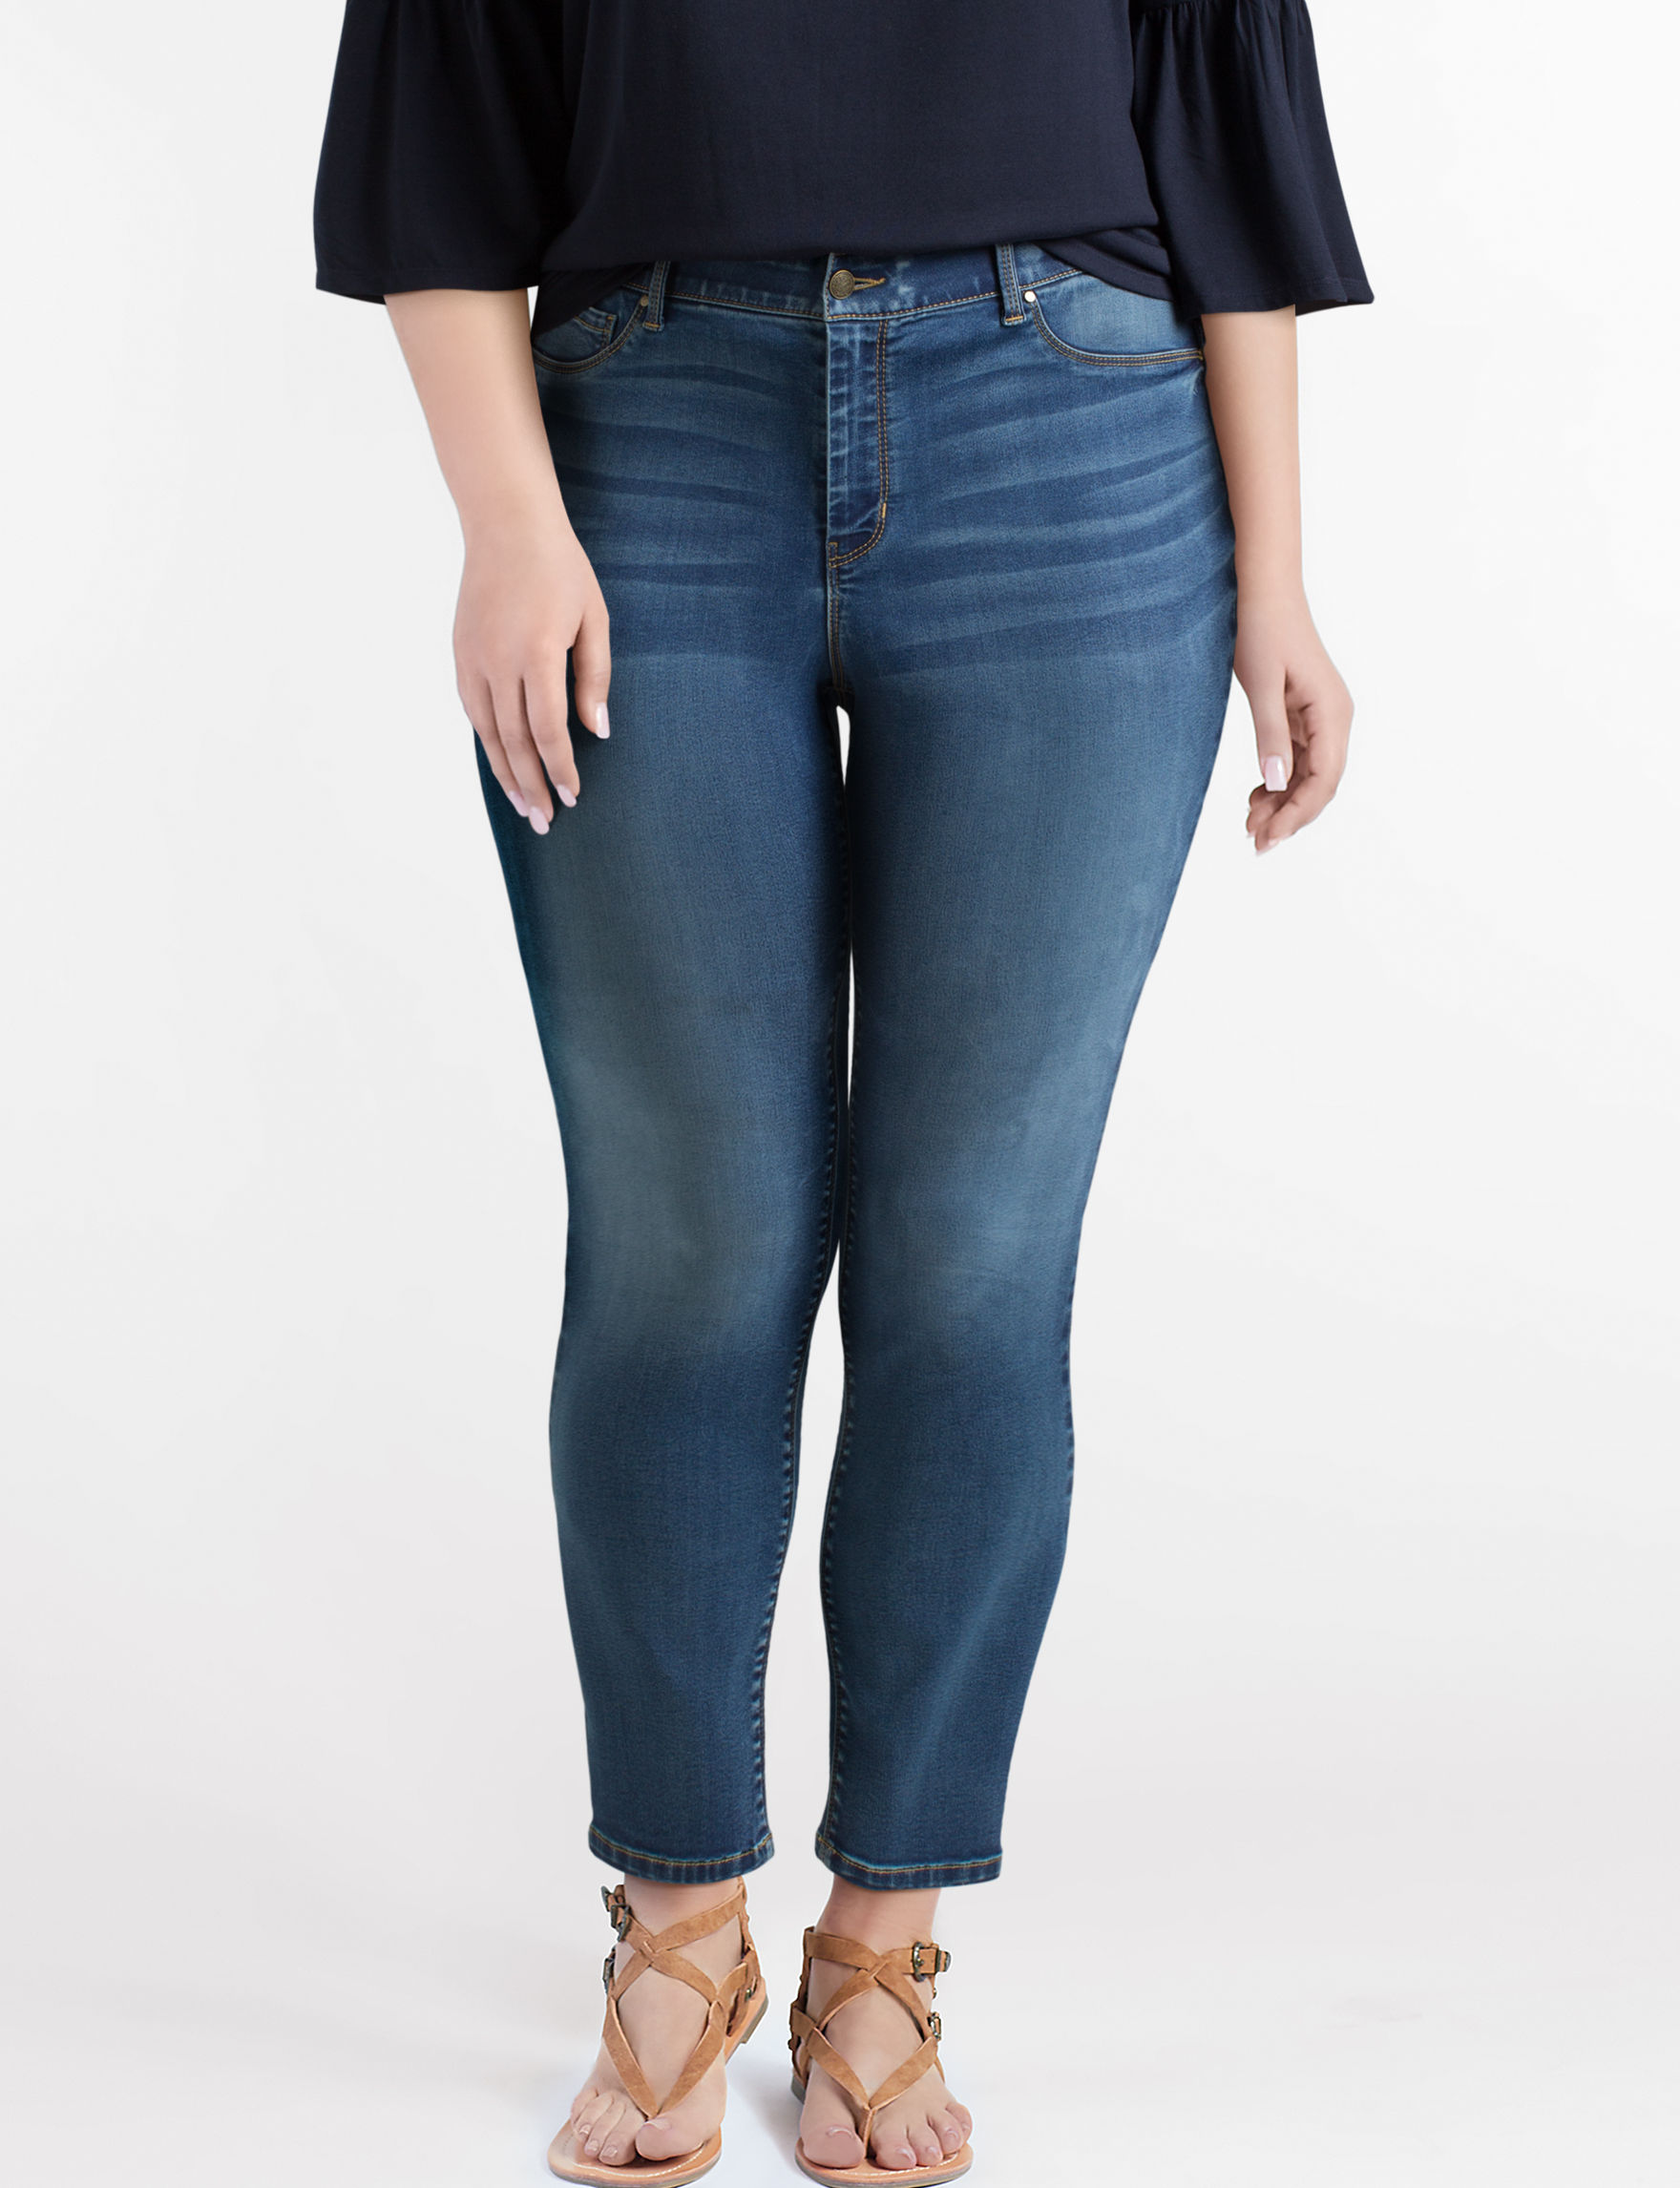 Signature Studio Blue Jeggings Skinny